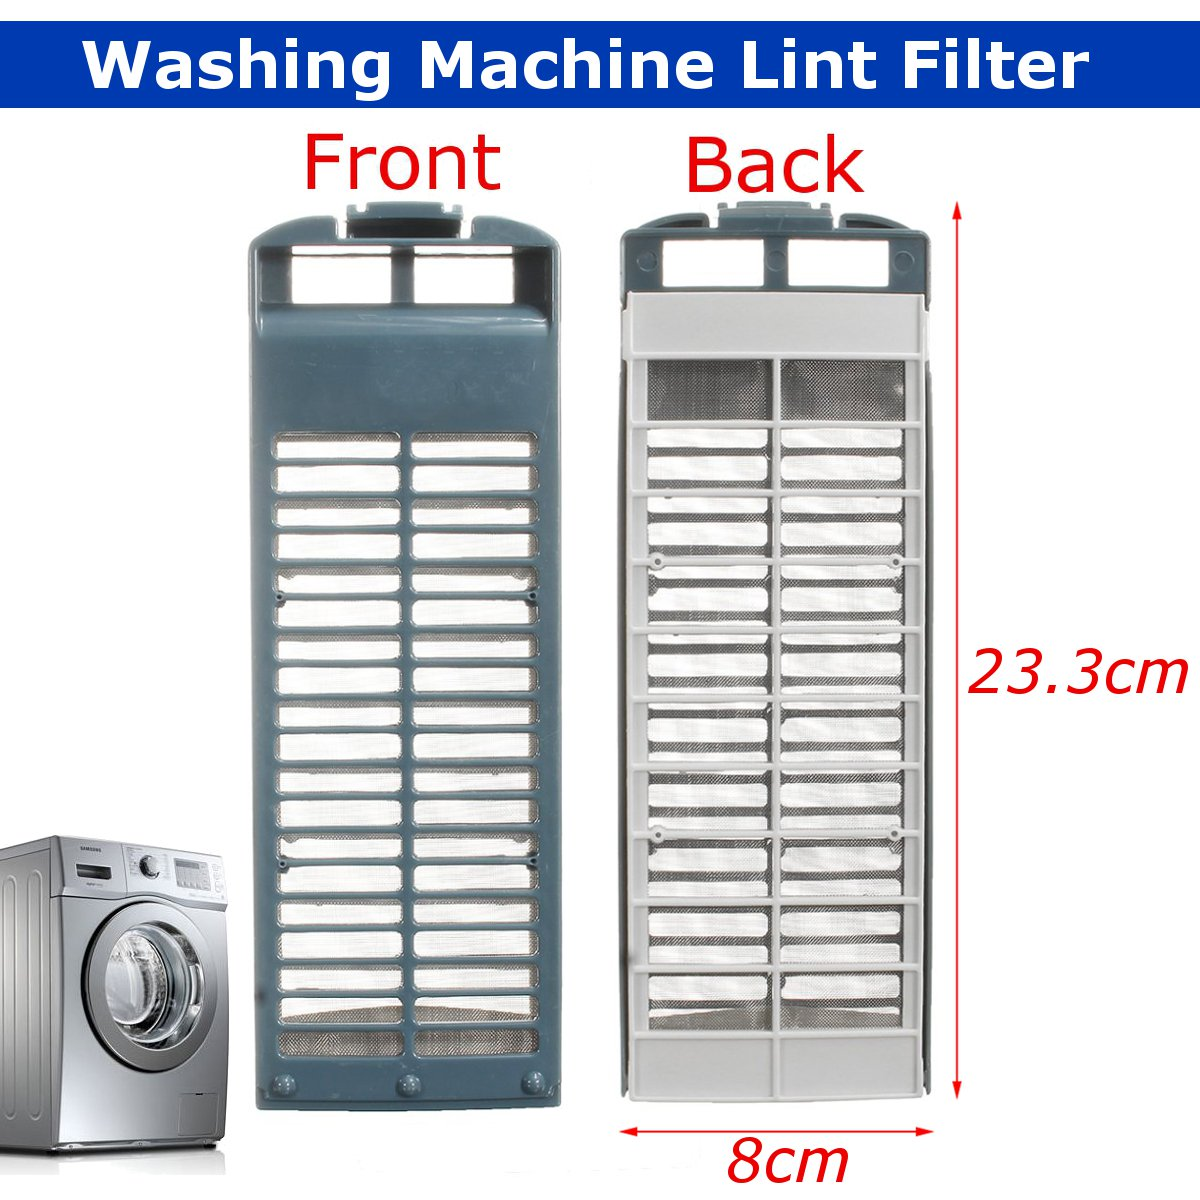 8cmX23.3cm Washing Machine Magic Lint Filter For Samsung